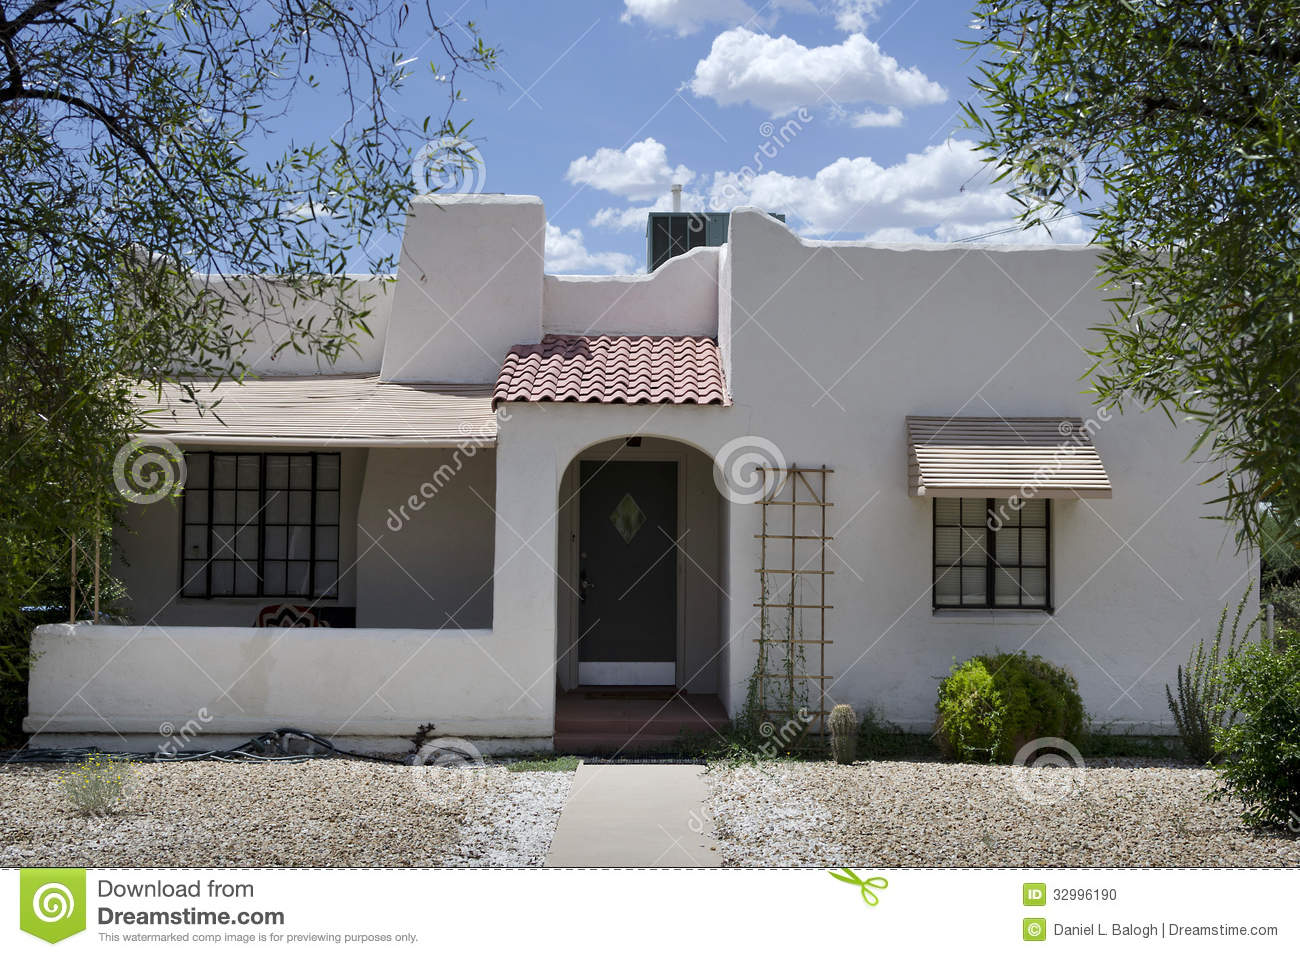 Arizona adobe architecture stock photos download 408 images for Building a house in arizona